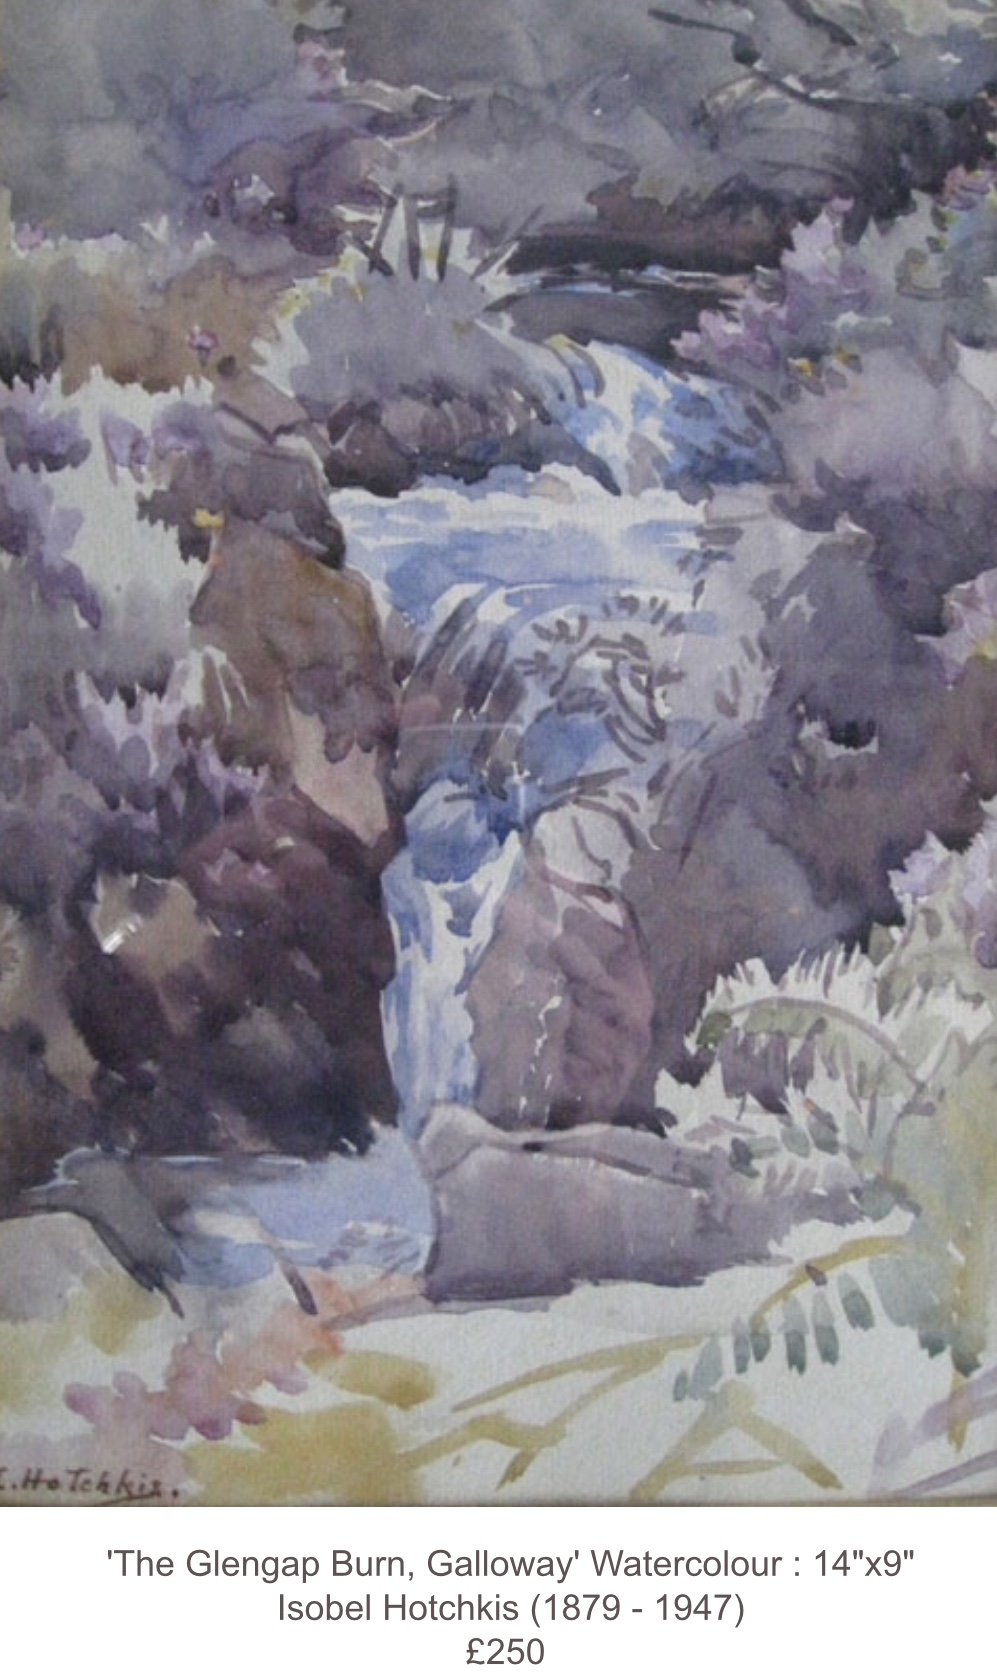 Isobel Hotchkis 'The Glengap Burn, Galloway'